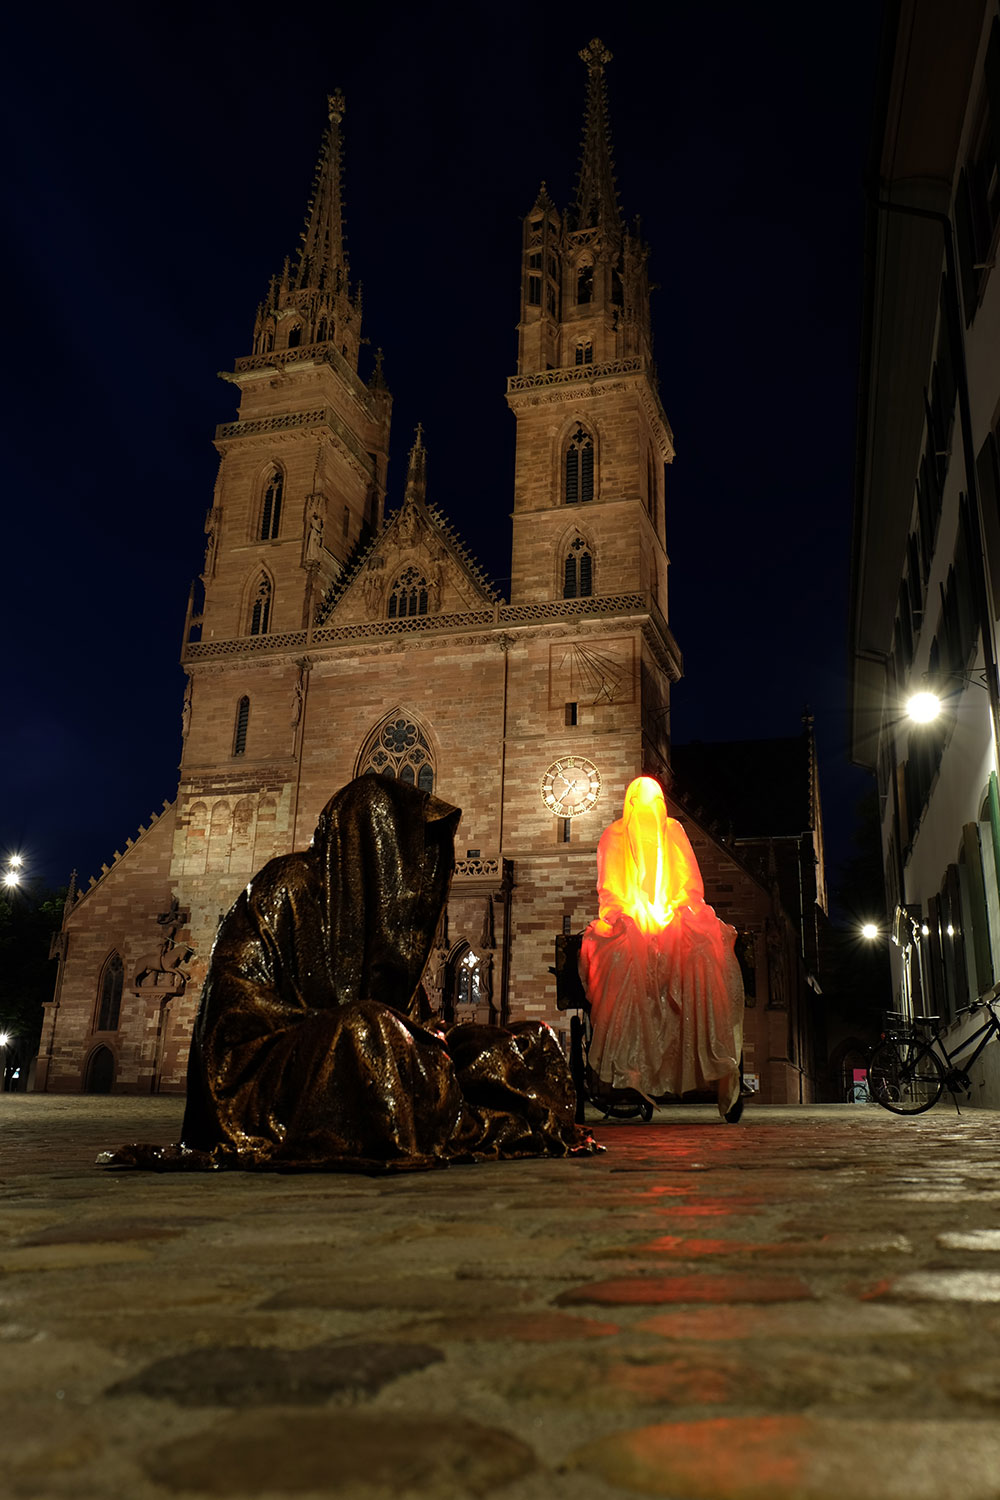 artbasel-swiss-scope-art-guardians-of-time-manfred-kili-kielnhofer-large-scale-contemporary-art-design-sculpture-statue-arts-arte-4817